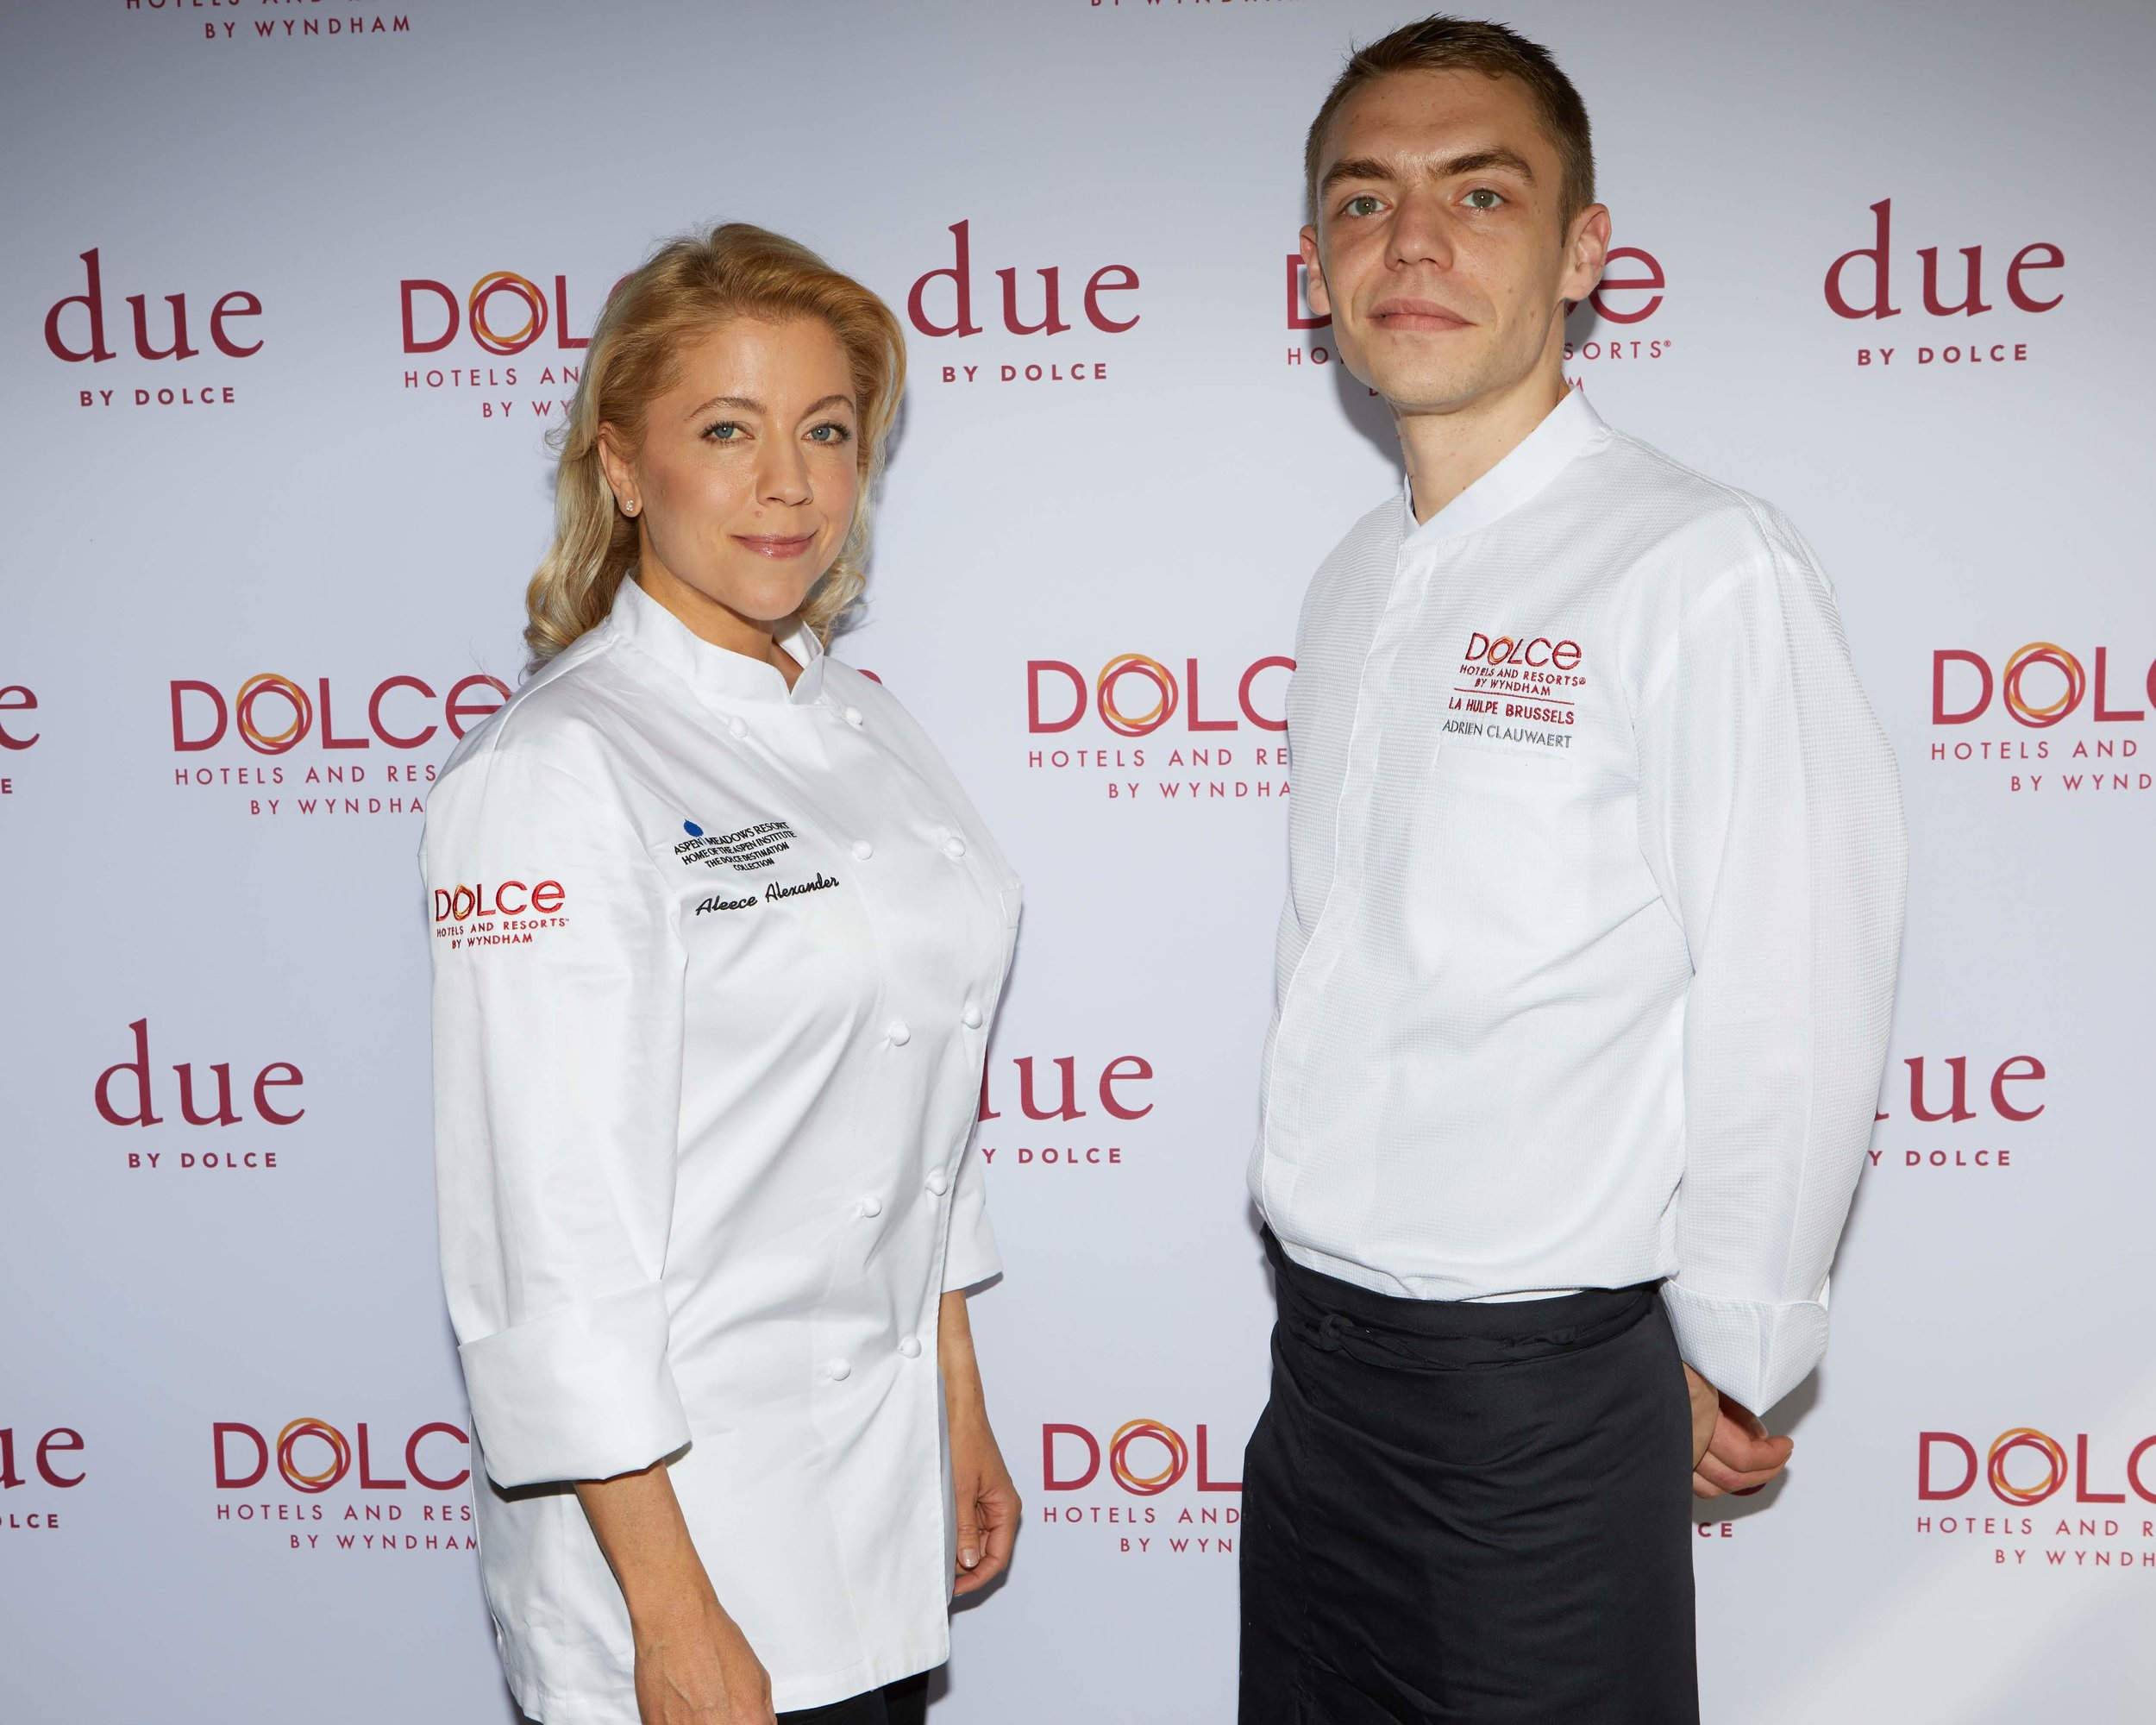 Chef Aleece Alexander of Dolce Aspen Meadows Resort and Chef Adrien Clauwaert of Dolce by Wyndham La Hulpe Brussels